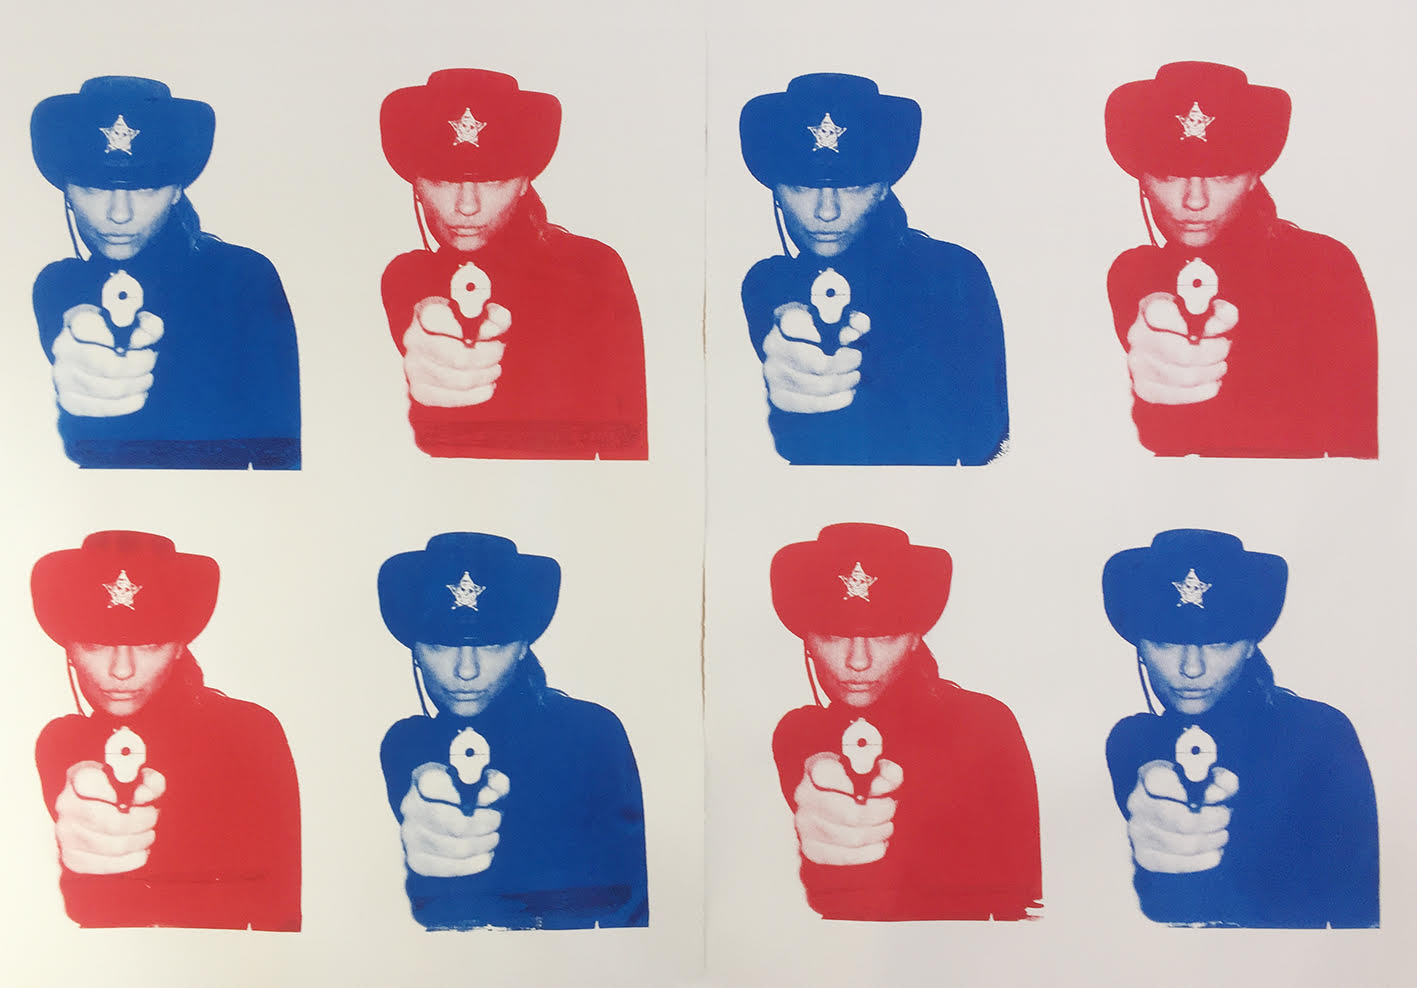 Sheriffs Red/Blue by Chris Heads